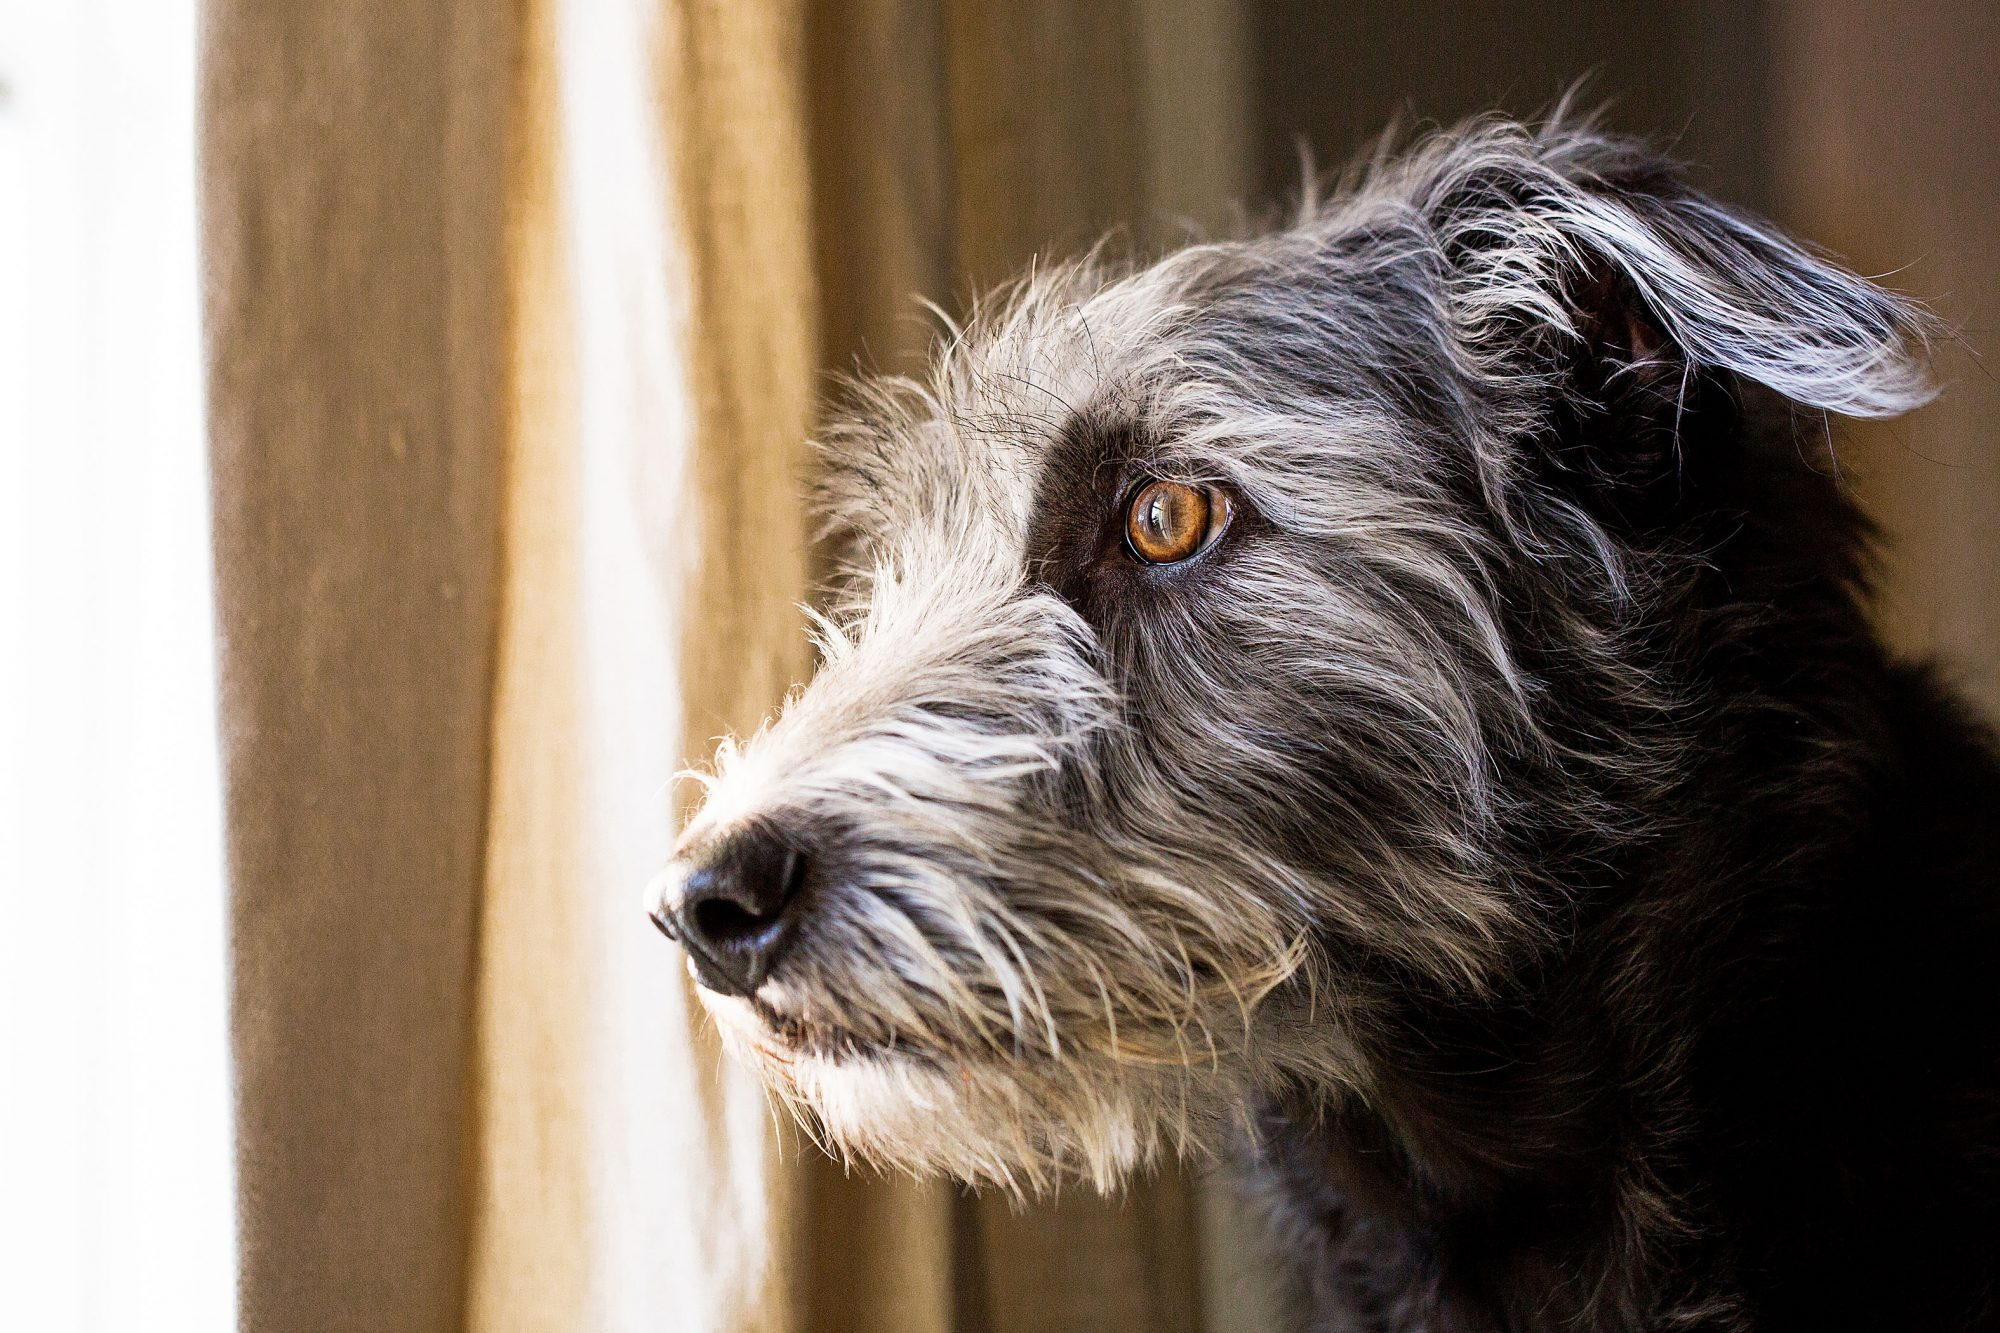 terrier looking out the window